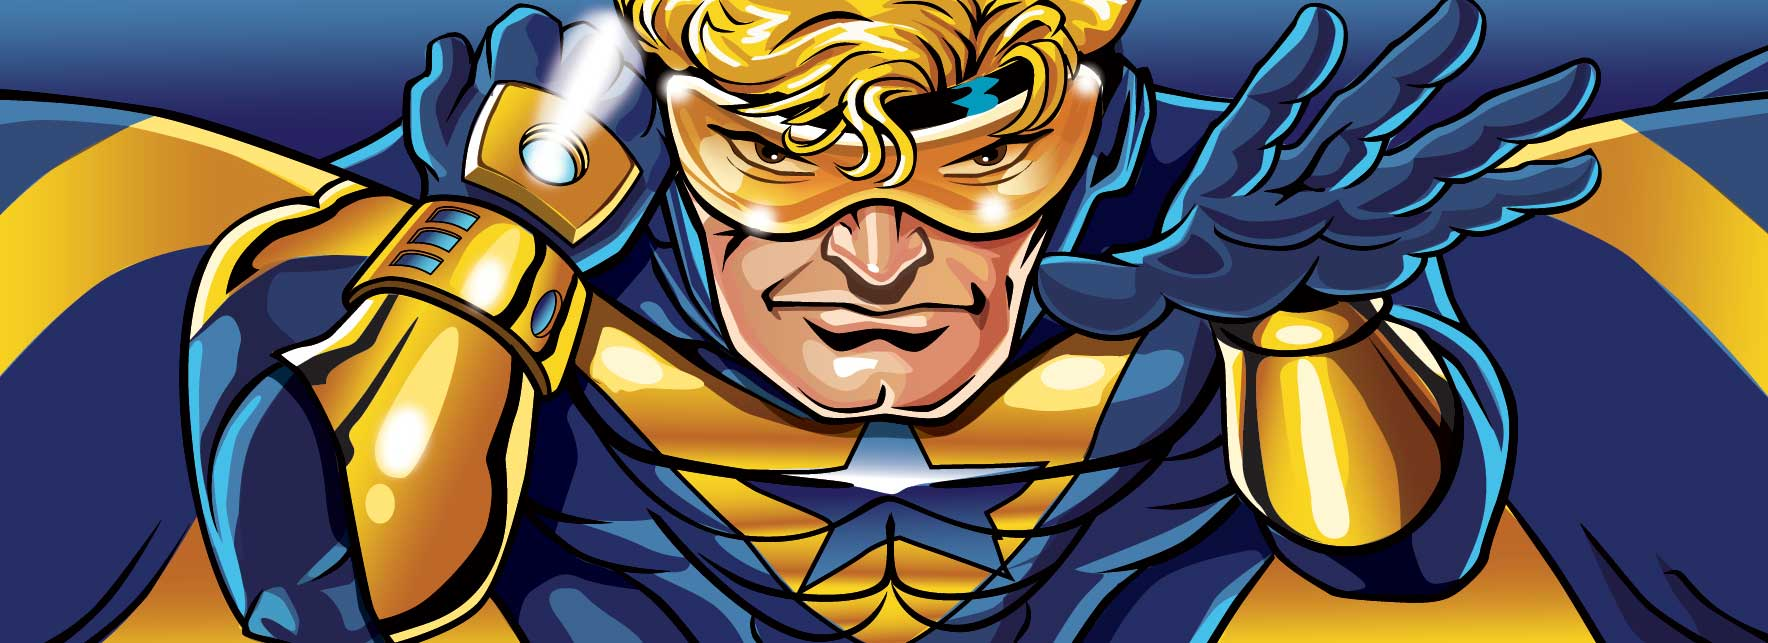 Booster-Gold_super_hero